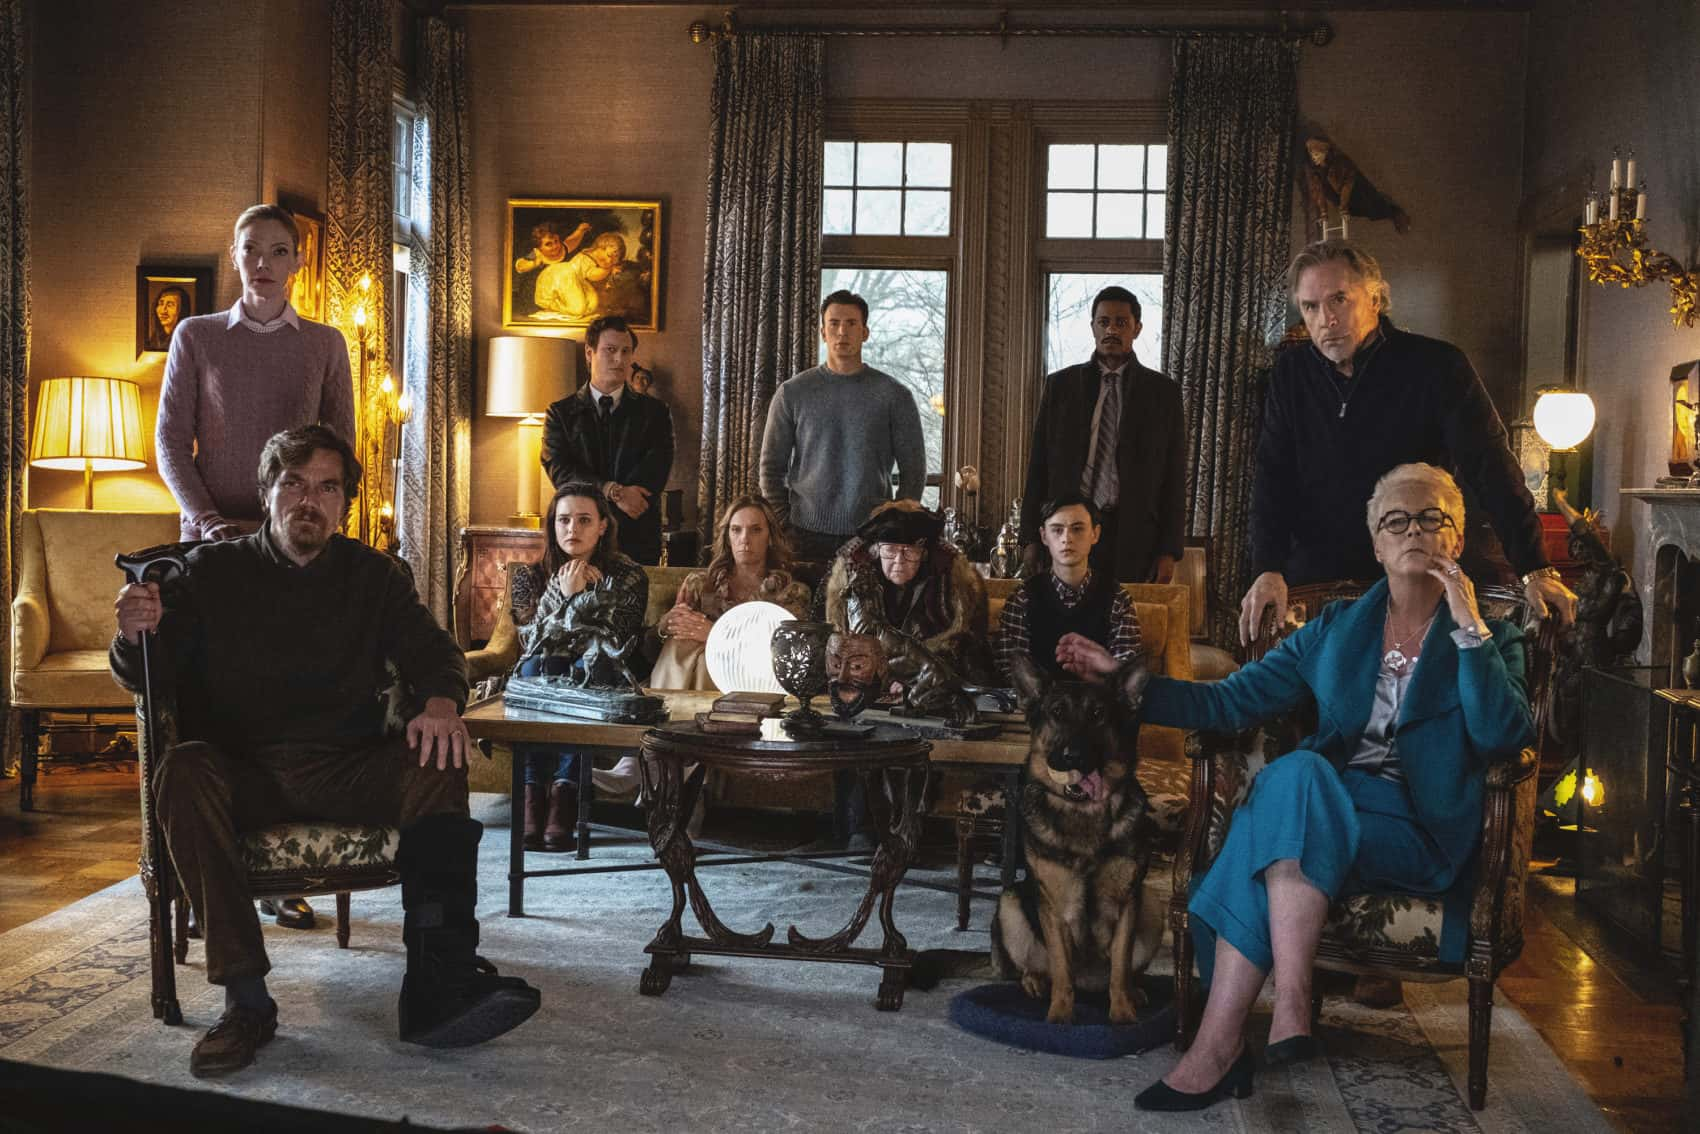 The star-studded Thrombey family awaits Detective Blanc's (Daniel Craig) conclusion in their grandfather's living room.